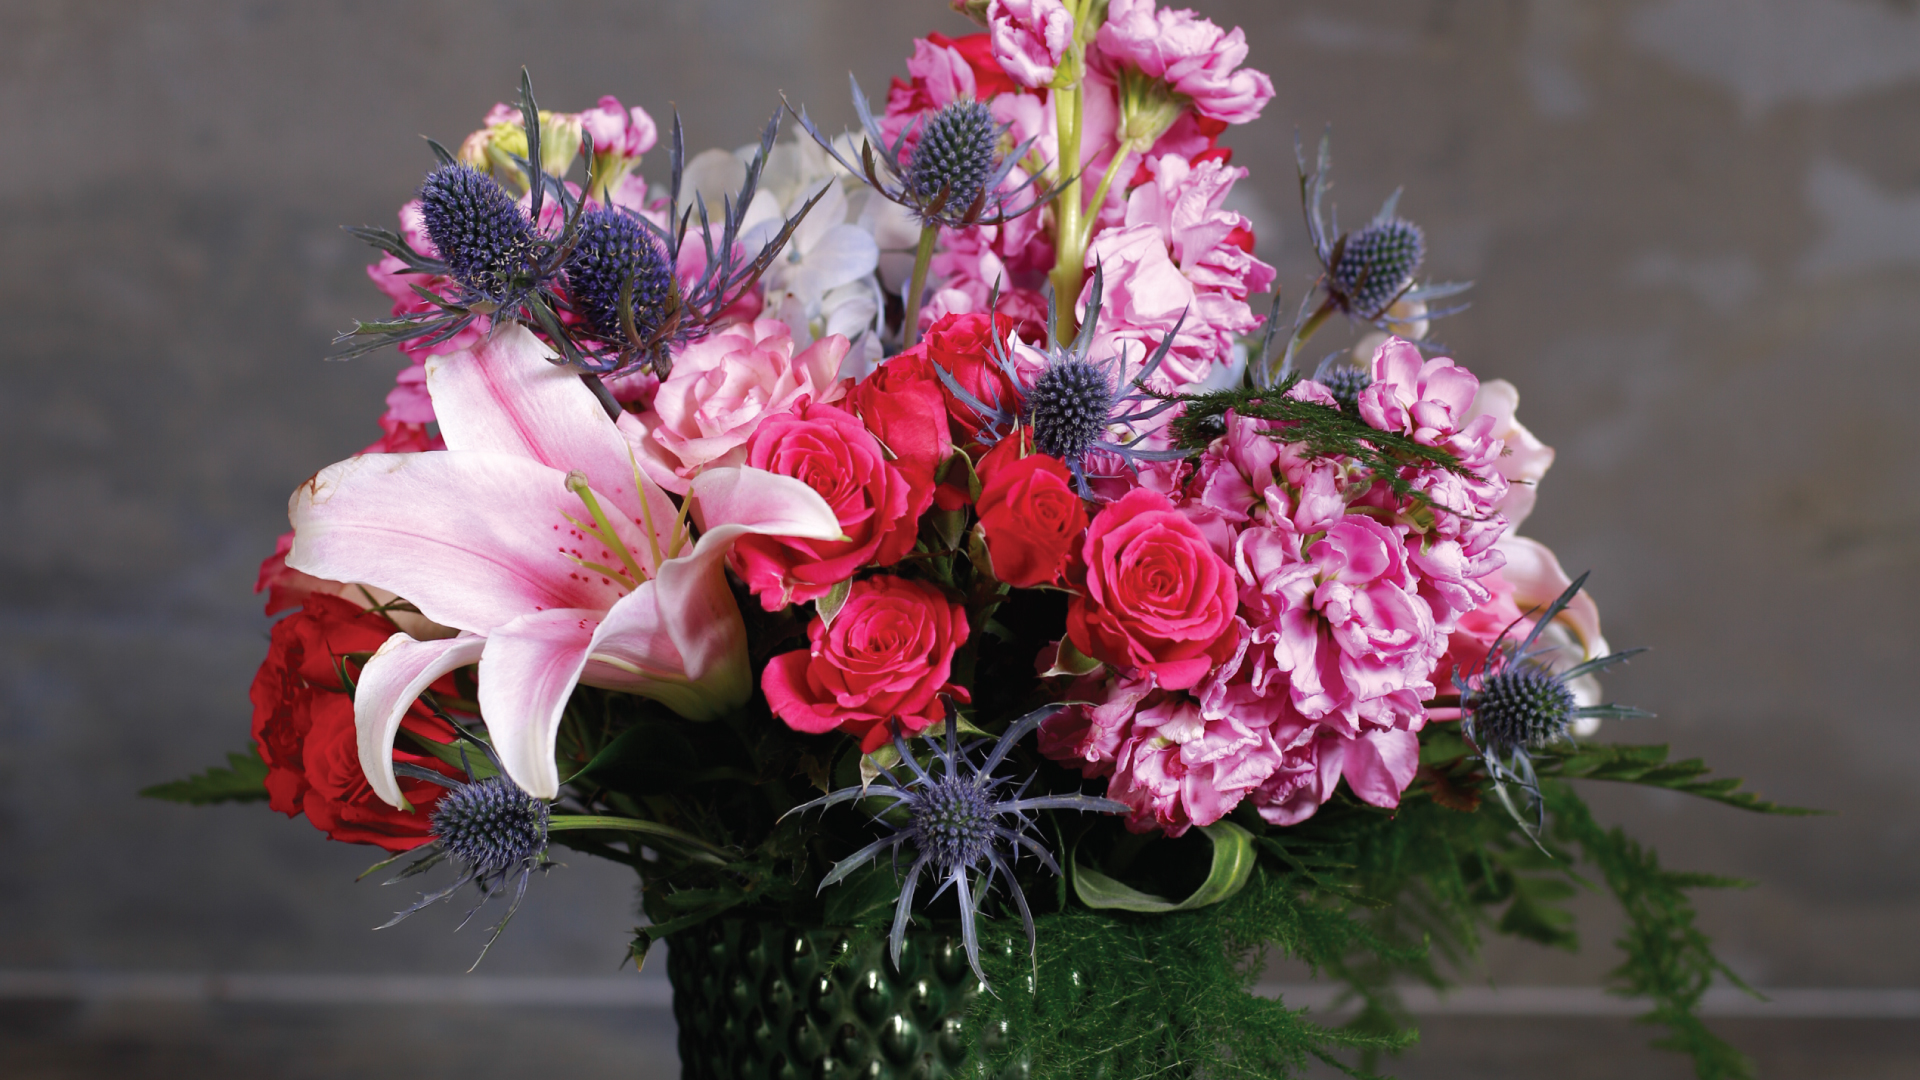 Roiann Ridley   flowers for weddings, special events, personal, sympathy